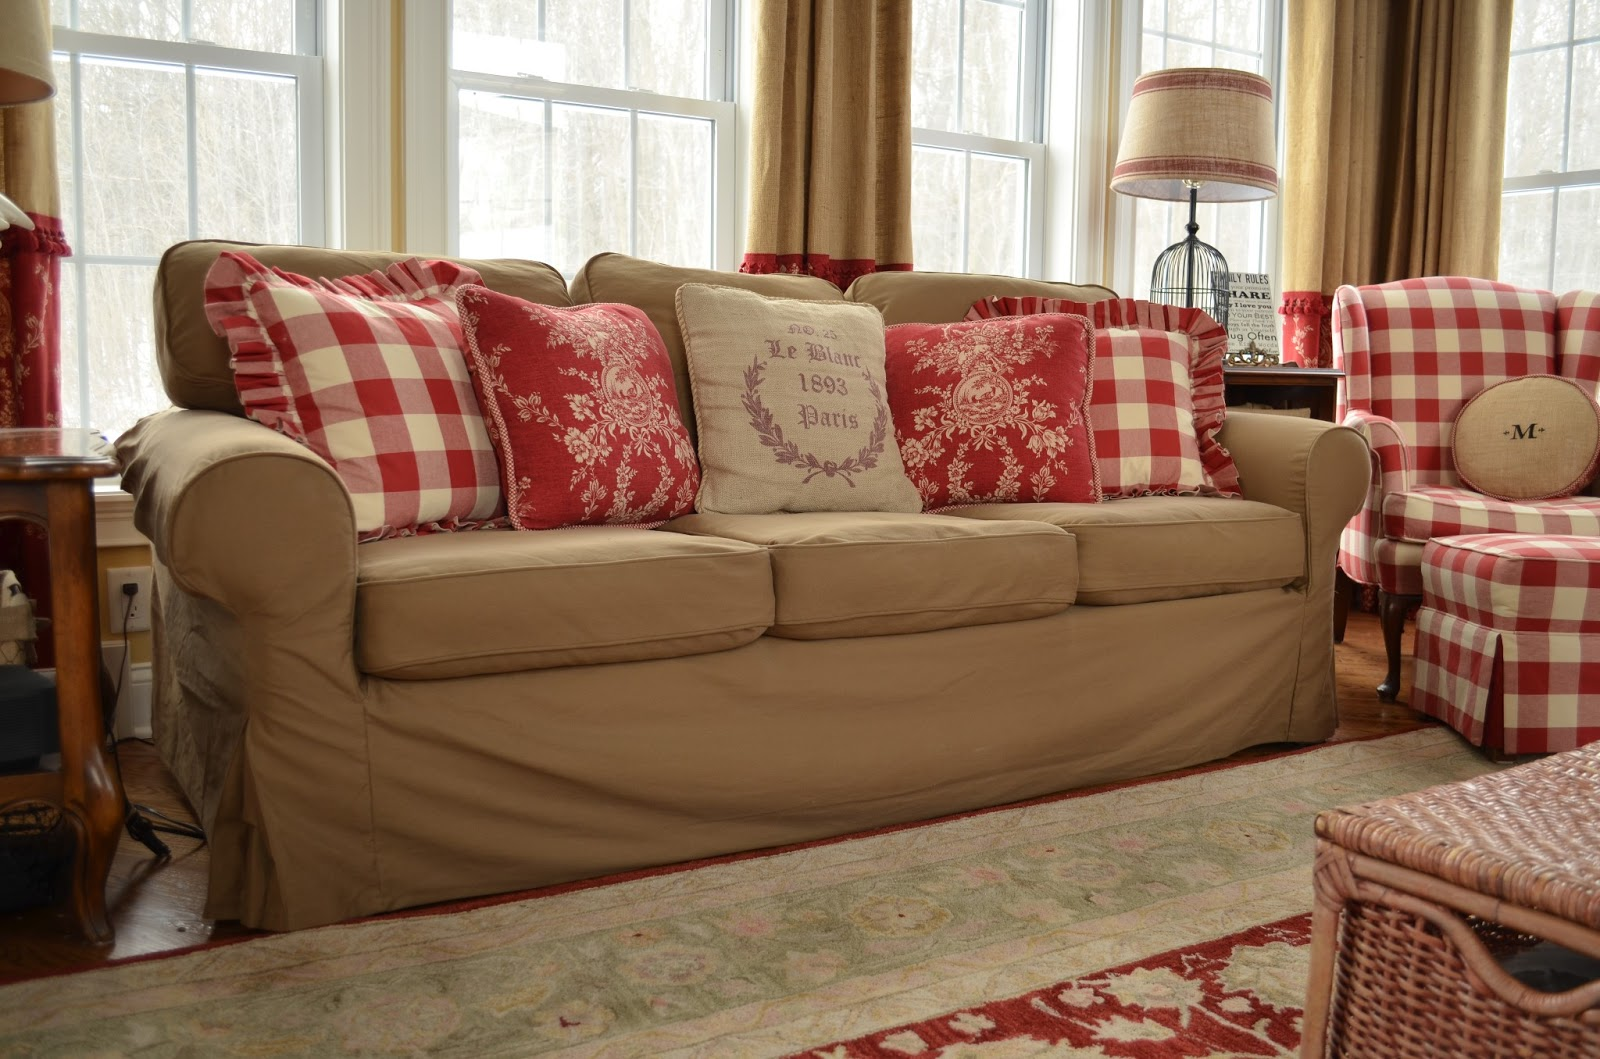 buffalo check sofa cover cleaning sw london the thrifty gypsy slipcover secret